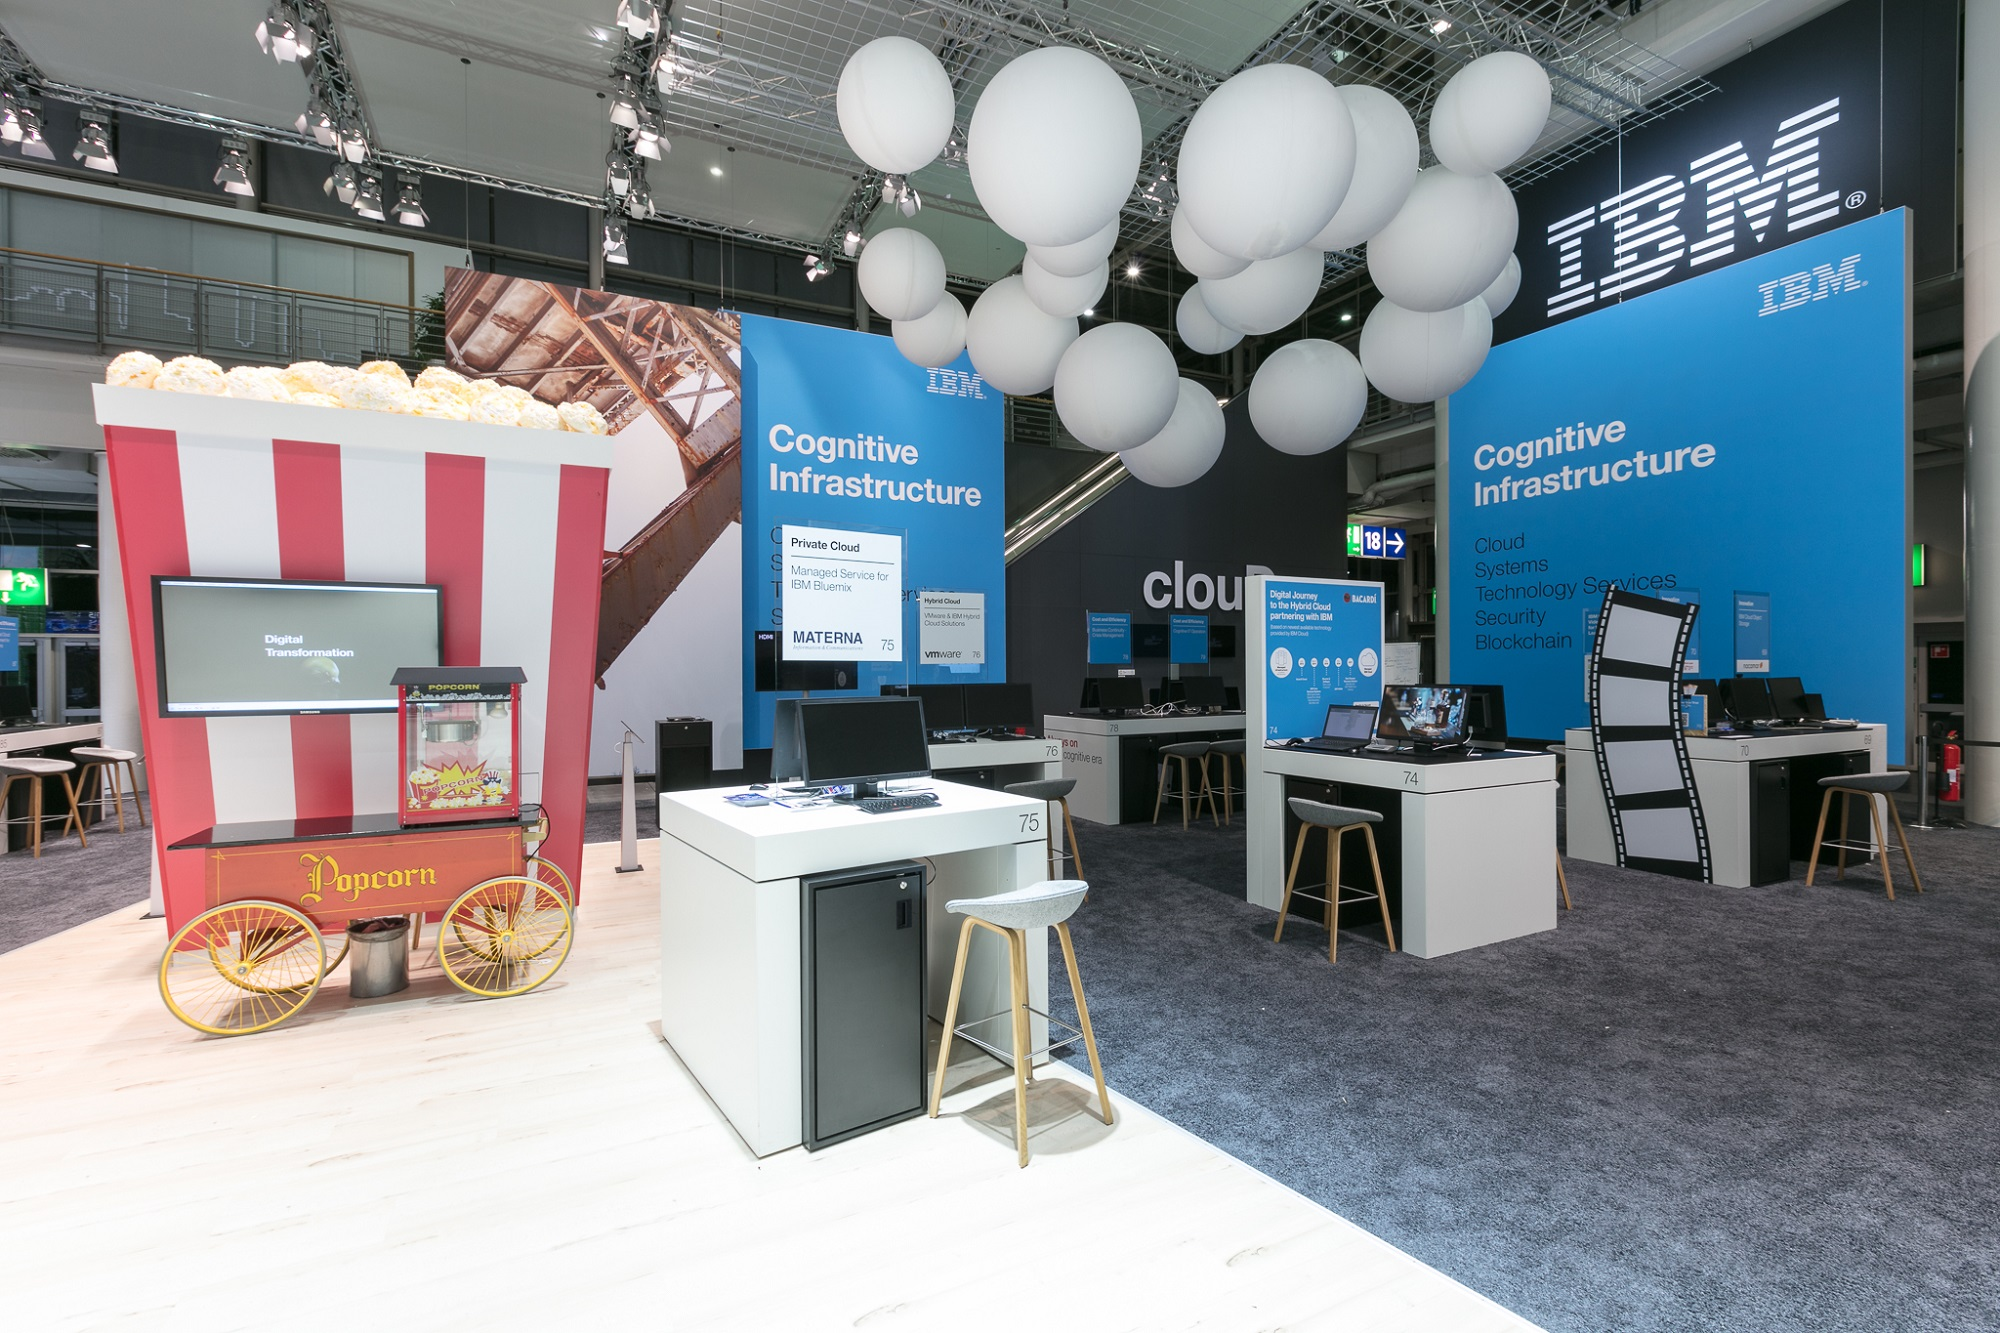 IBM-CeBIT-2017-Architektur-7460.jpg